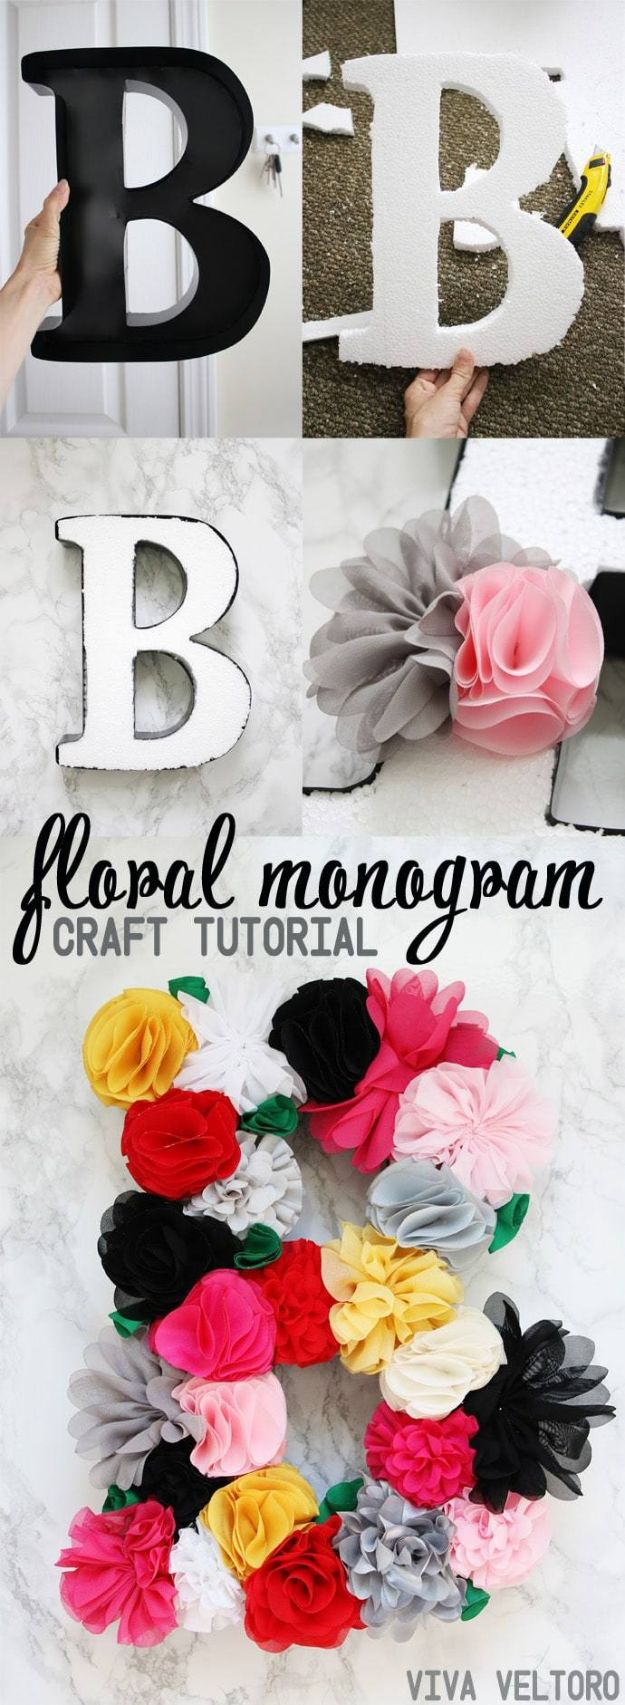 Crafts To Make and Sell - Flower Letter Monogram - 75 MORE Easy DIY Ideas for Cheap Things To Sell on Etsy, Online and for Craft Fairs. Make Money with These Homemade Crafts for Teens, Kids, Christmas, Summer, Mother's Day Gifts. http://diyjoy.com/crafts-to-make-and-sell-ideas